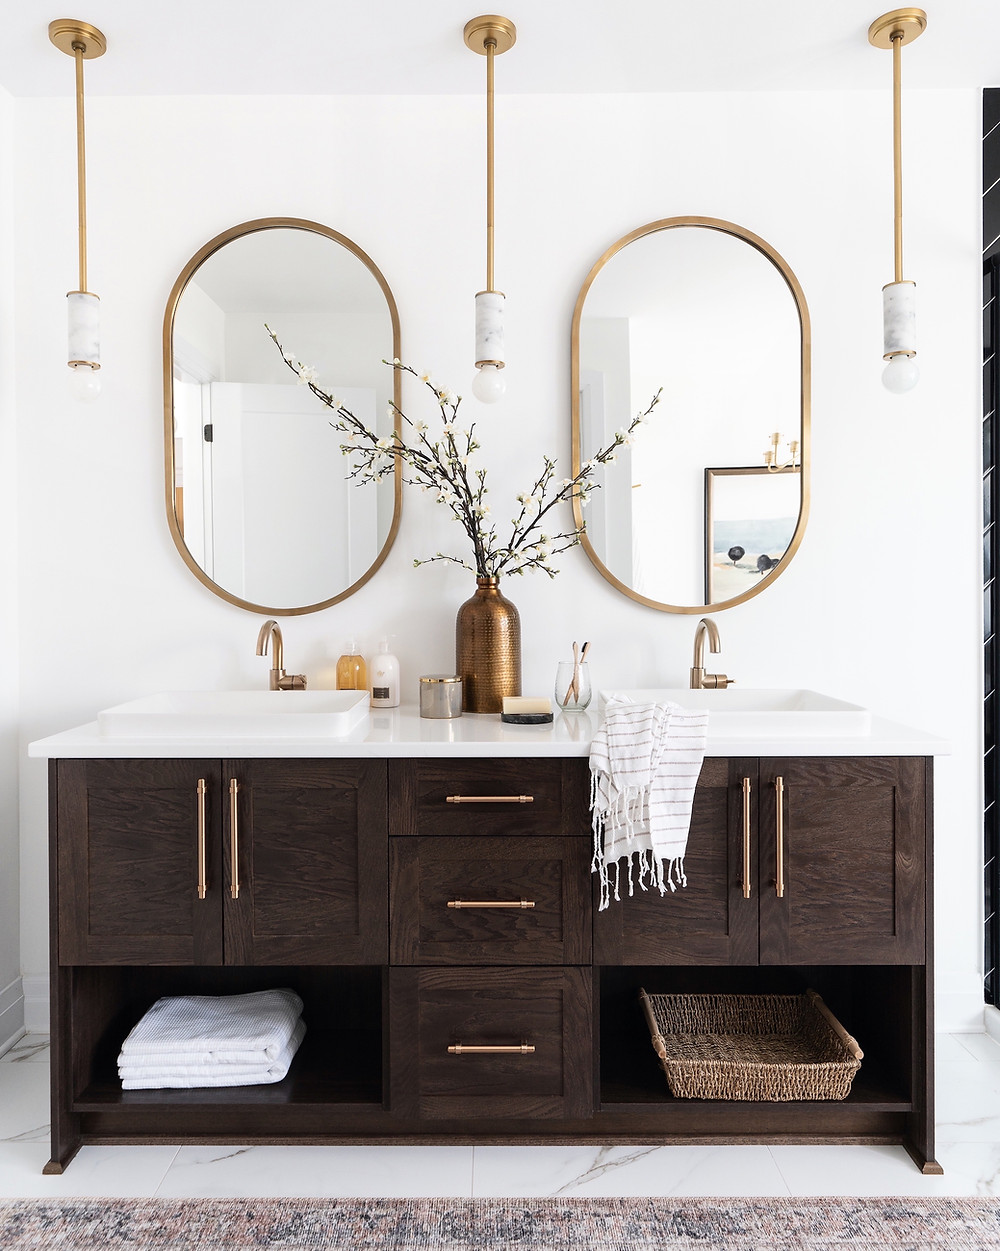 Statement vanity moment seen at the Pinefield project designed by Ottawa firm Leclair Decor